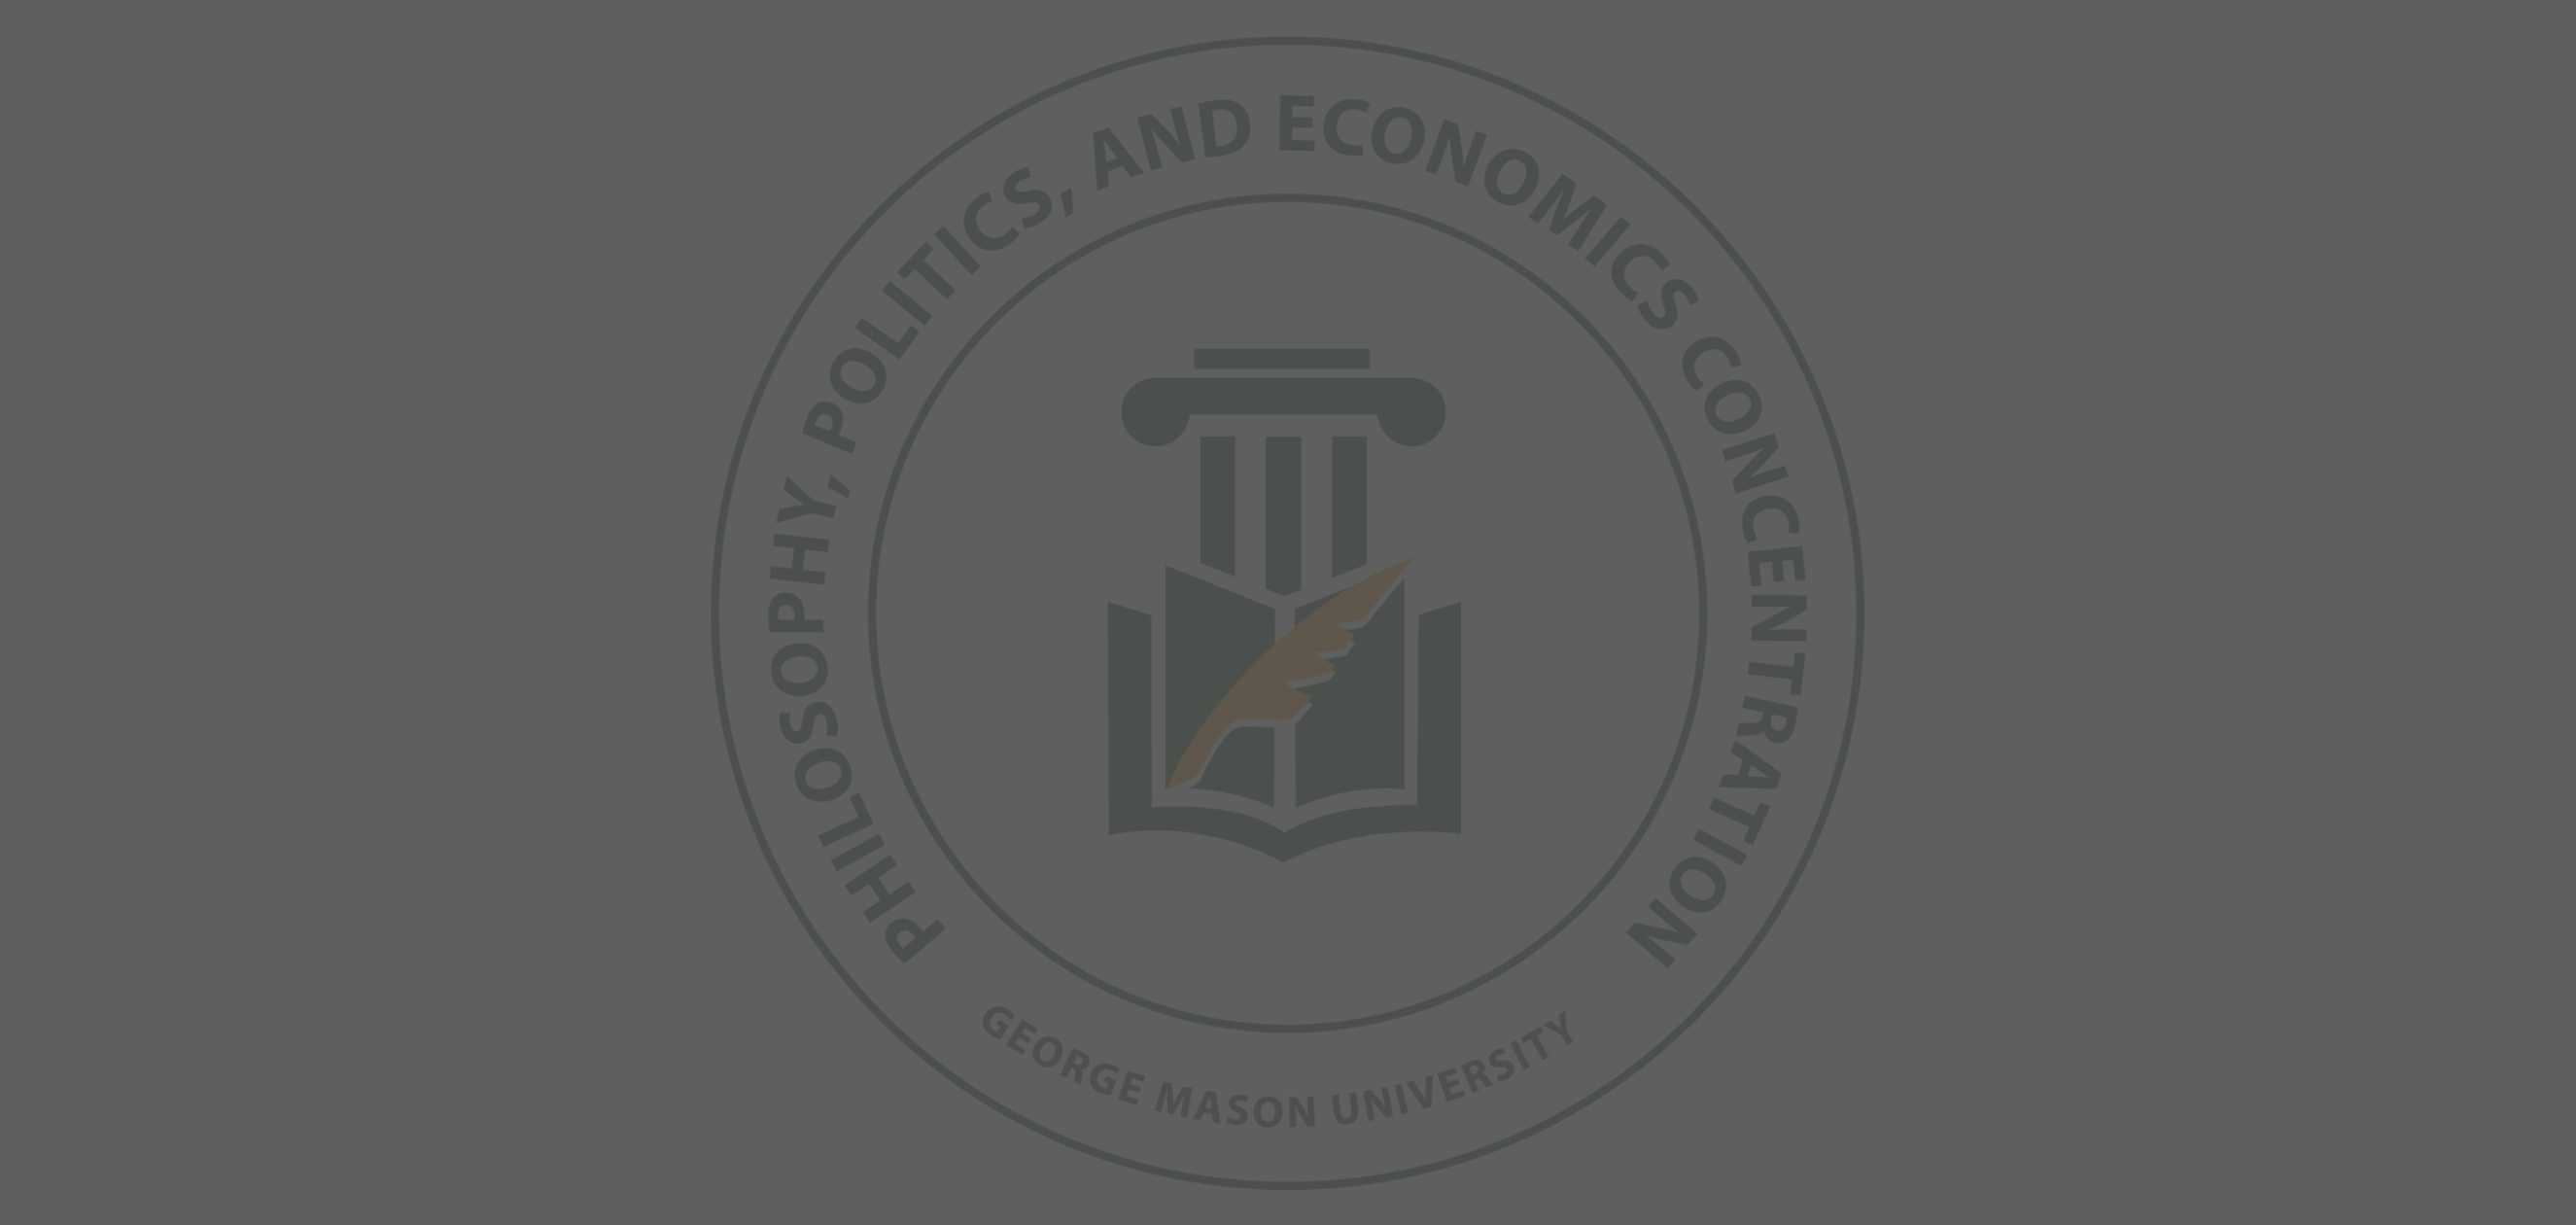 Philosophy, Politics, and Economics (PPE)